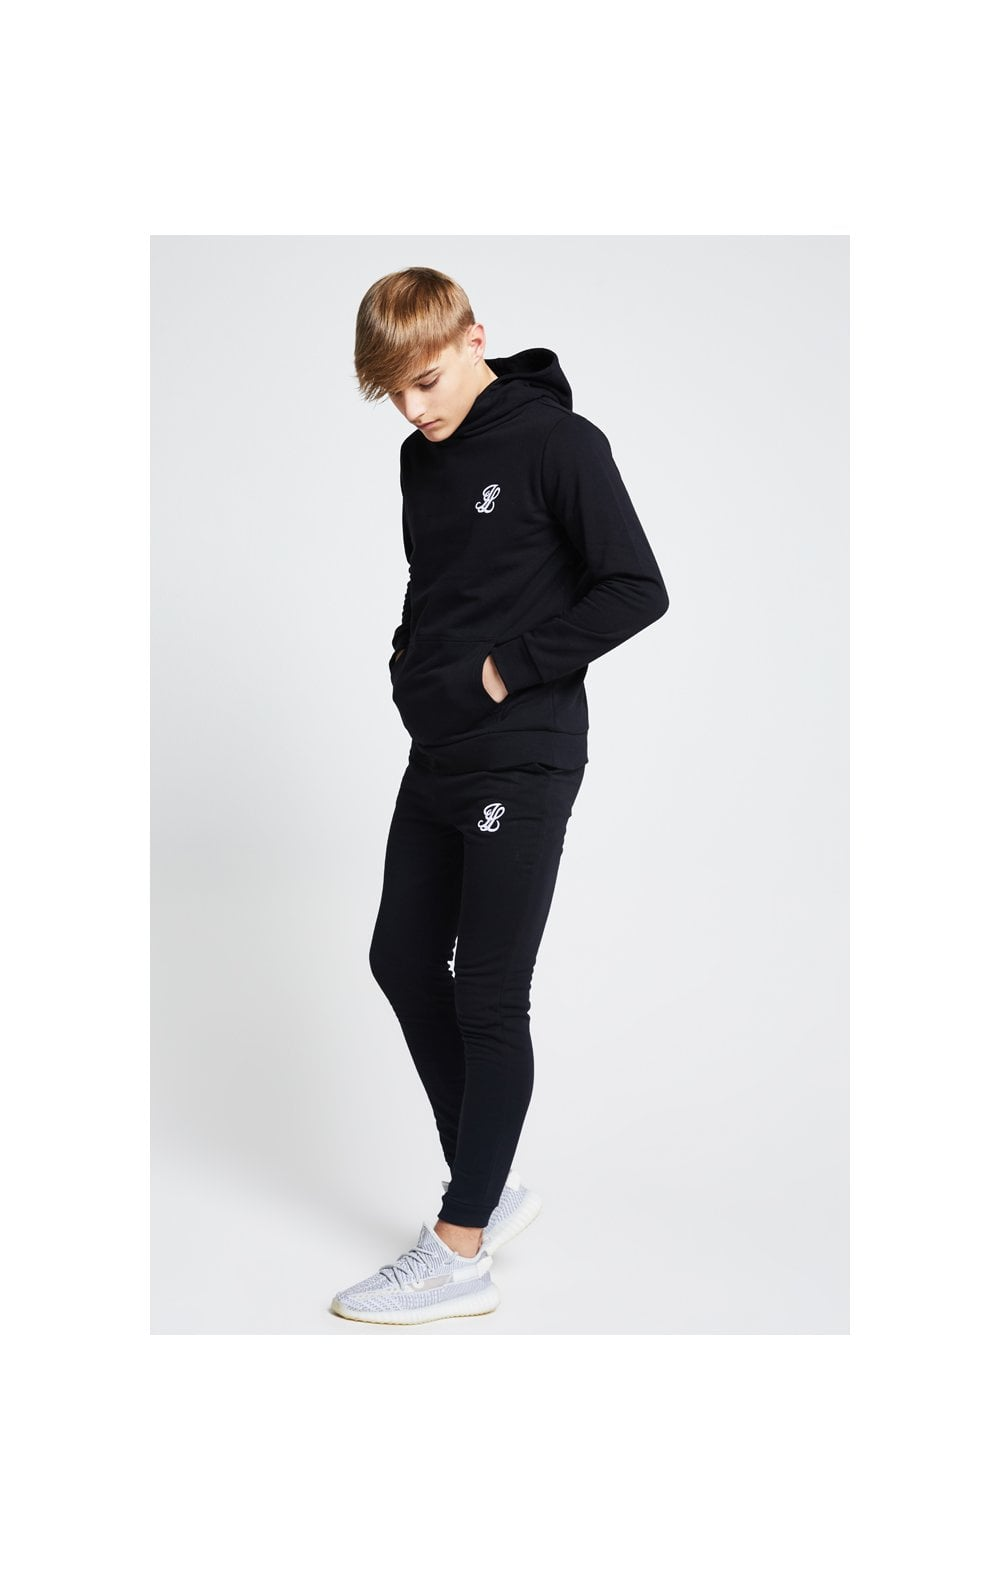 Illusive London Overhead Hoodie - Black (4)